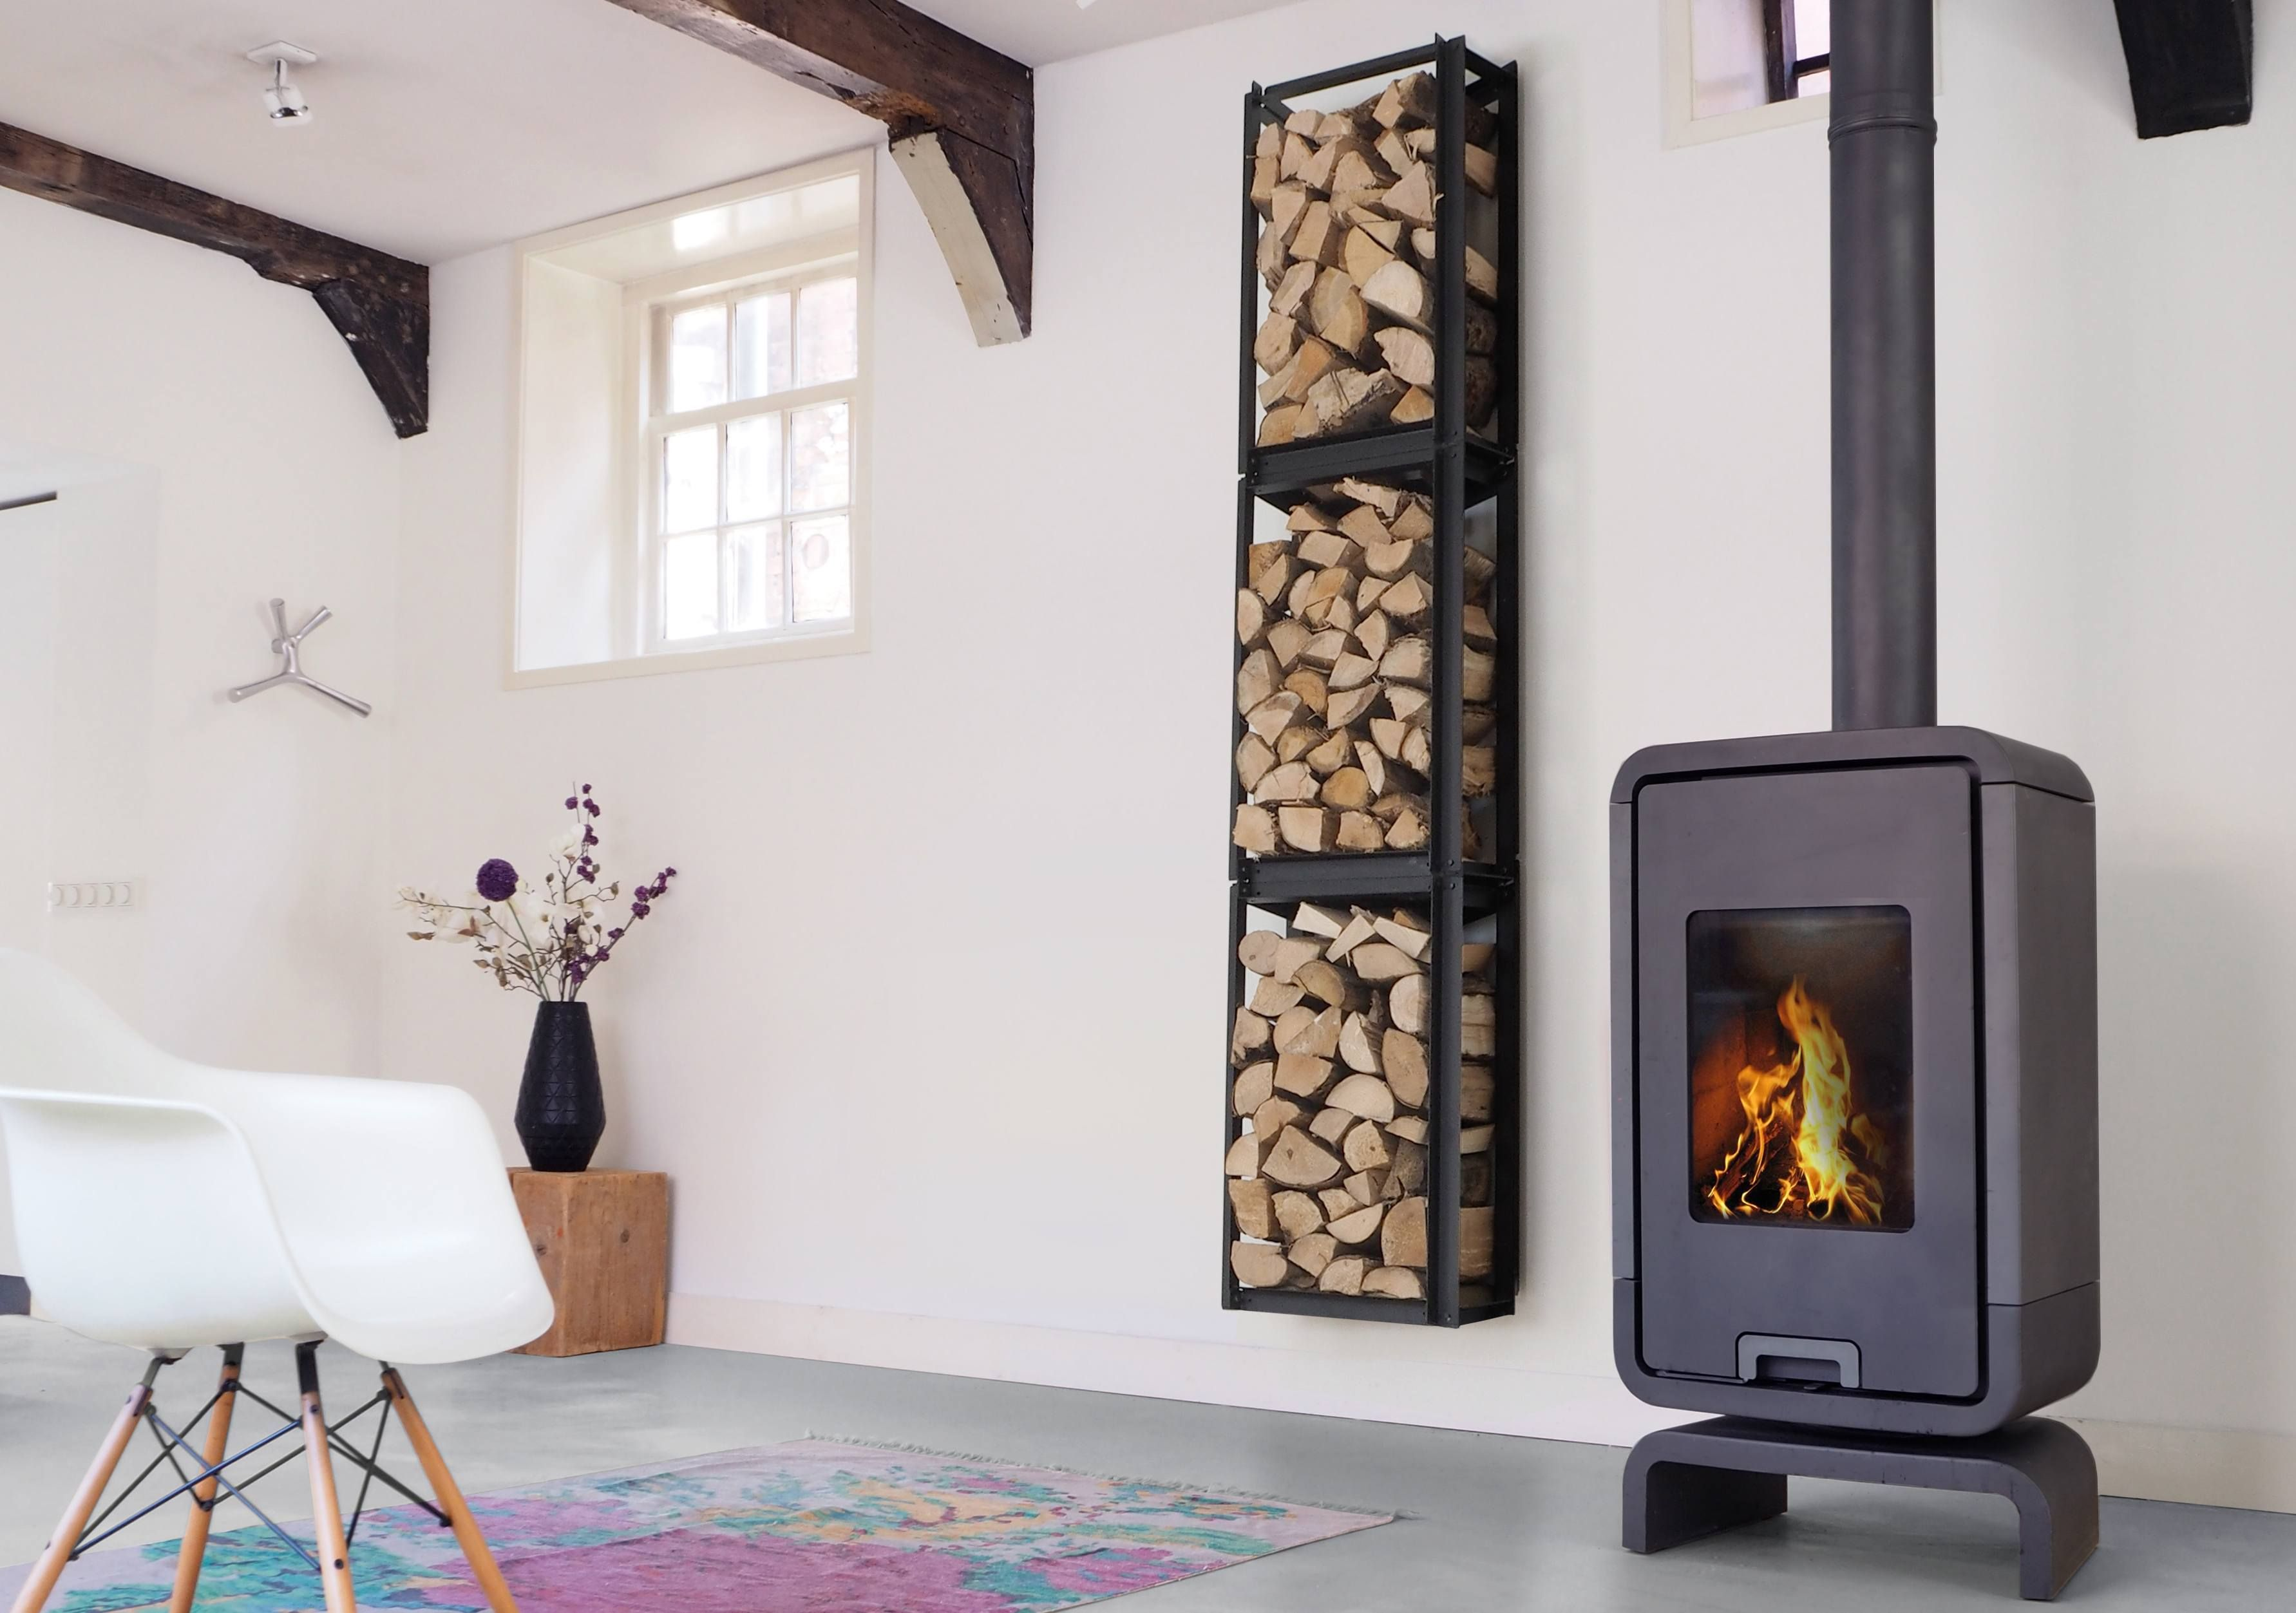 Discover Ideas About Firewood Holder